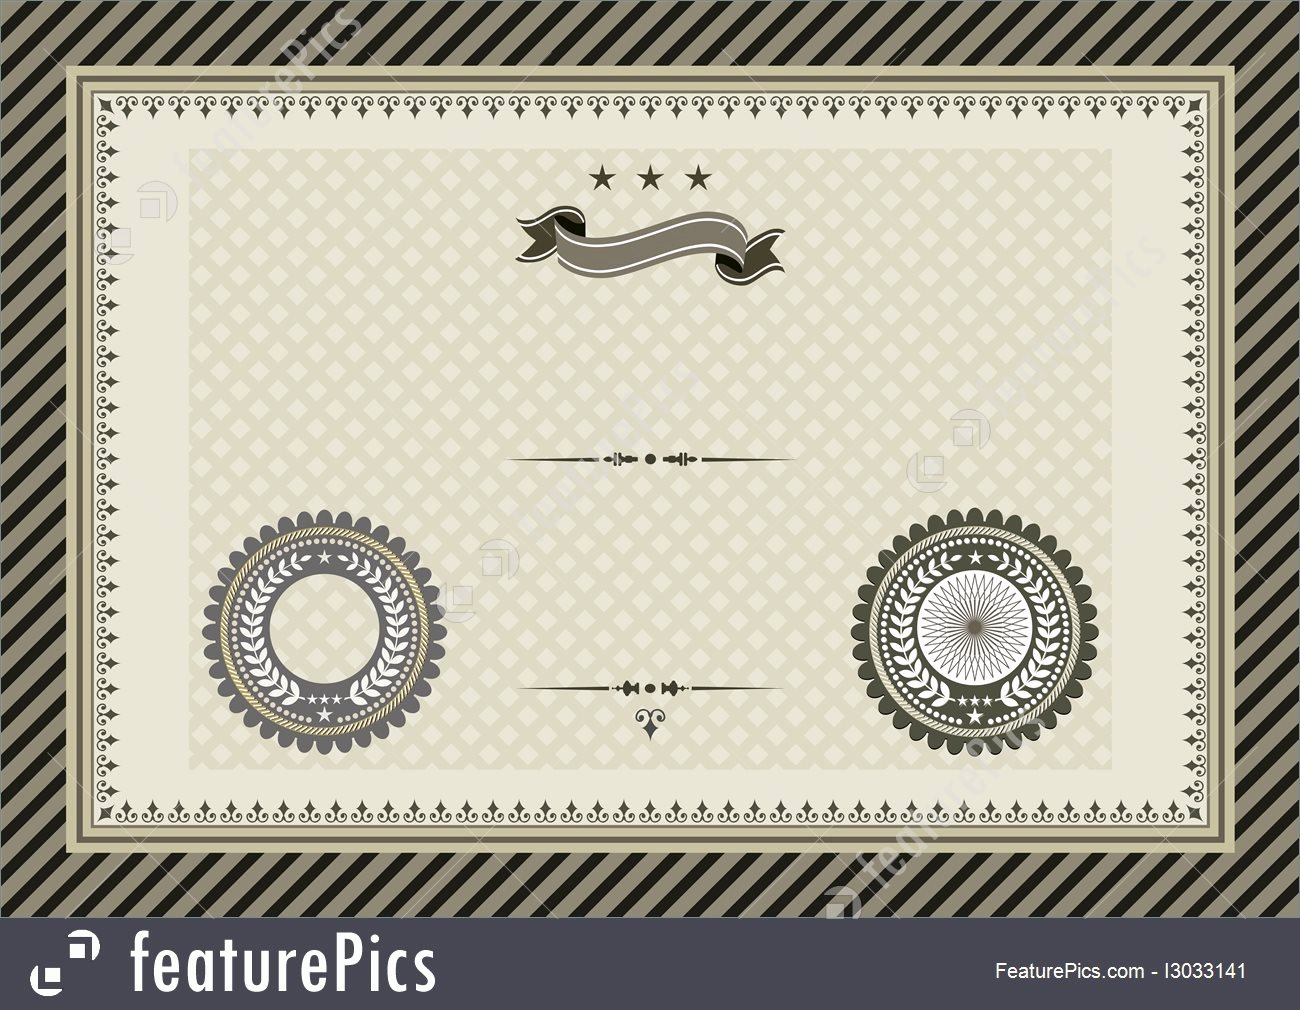 Spay Neuter Certificate Template Lovely Templates Retro Template Certificate with Seals Stock